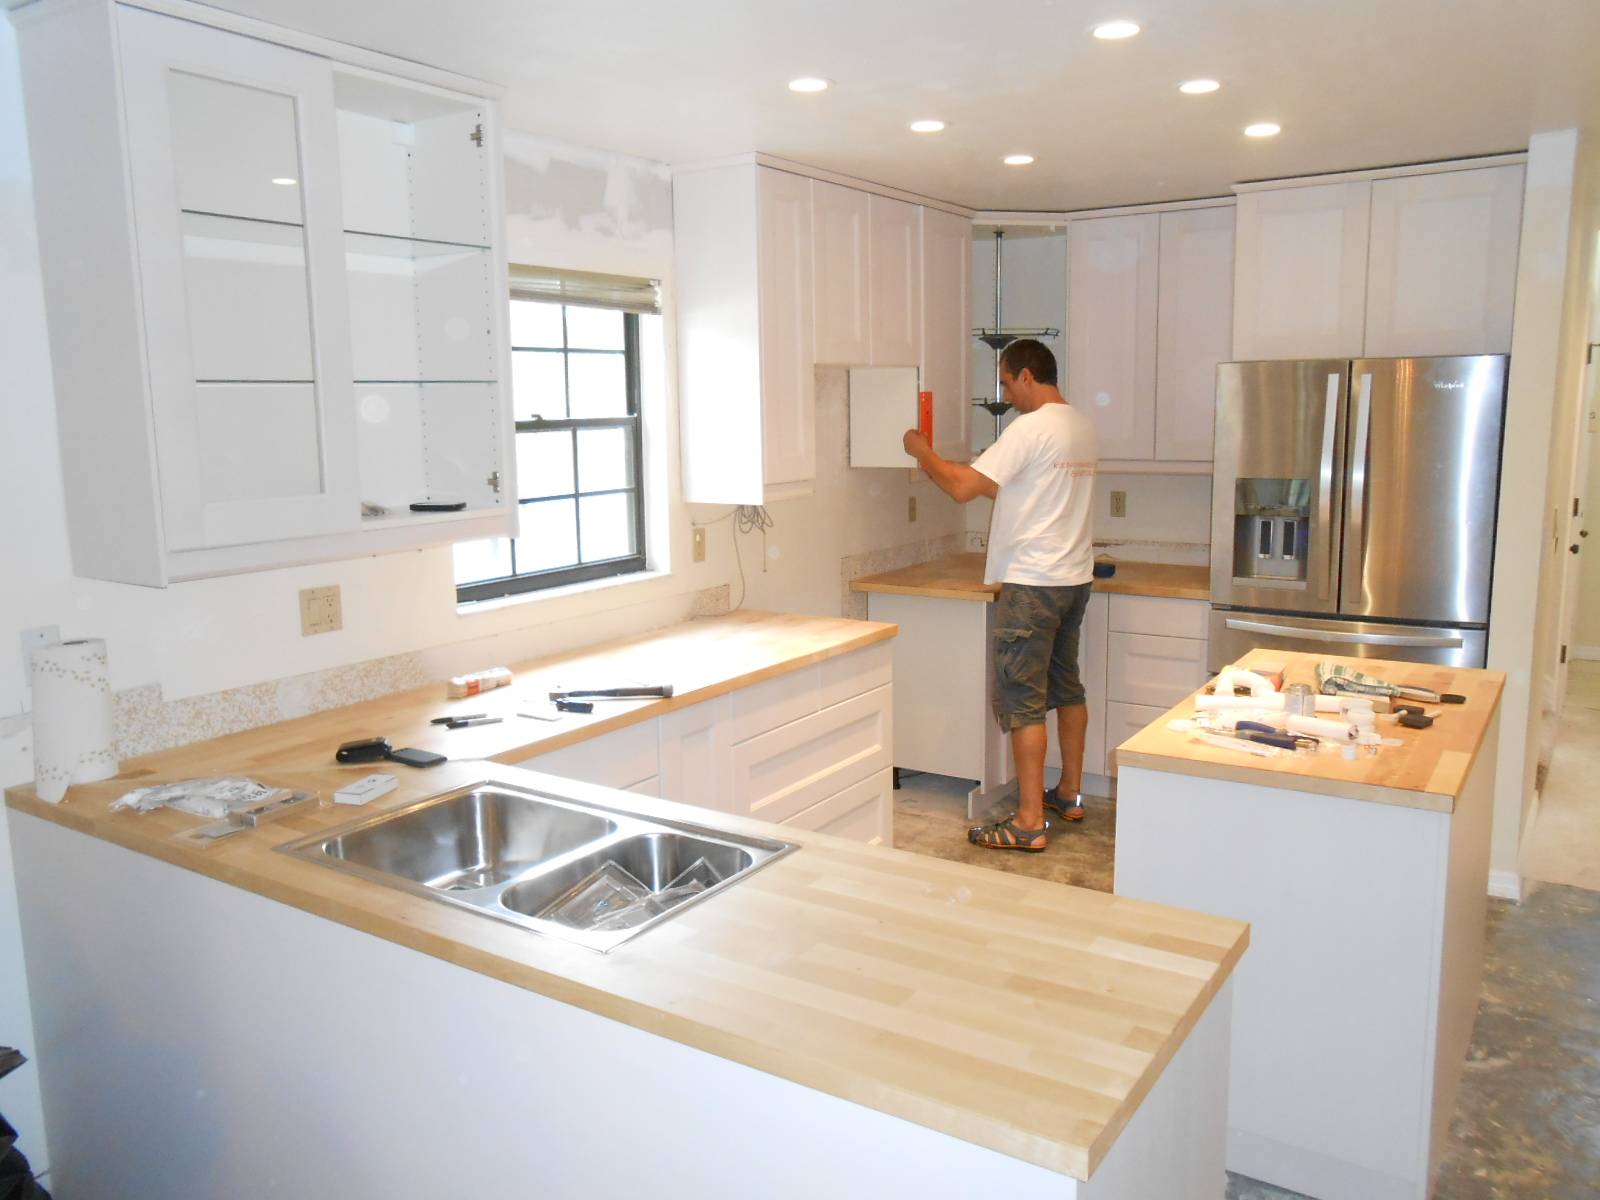 From shabby to chic kitchen remodels on a budget for How to remodel a kitchen